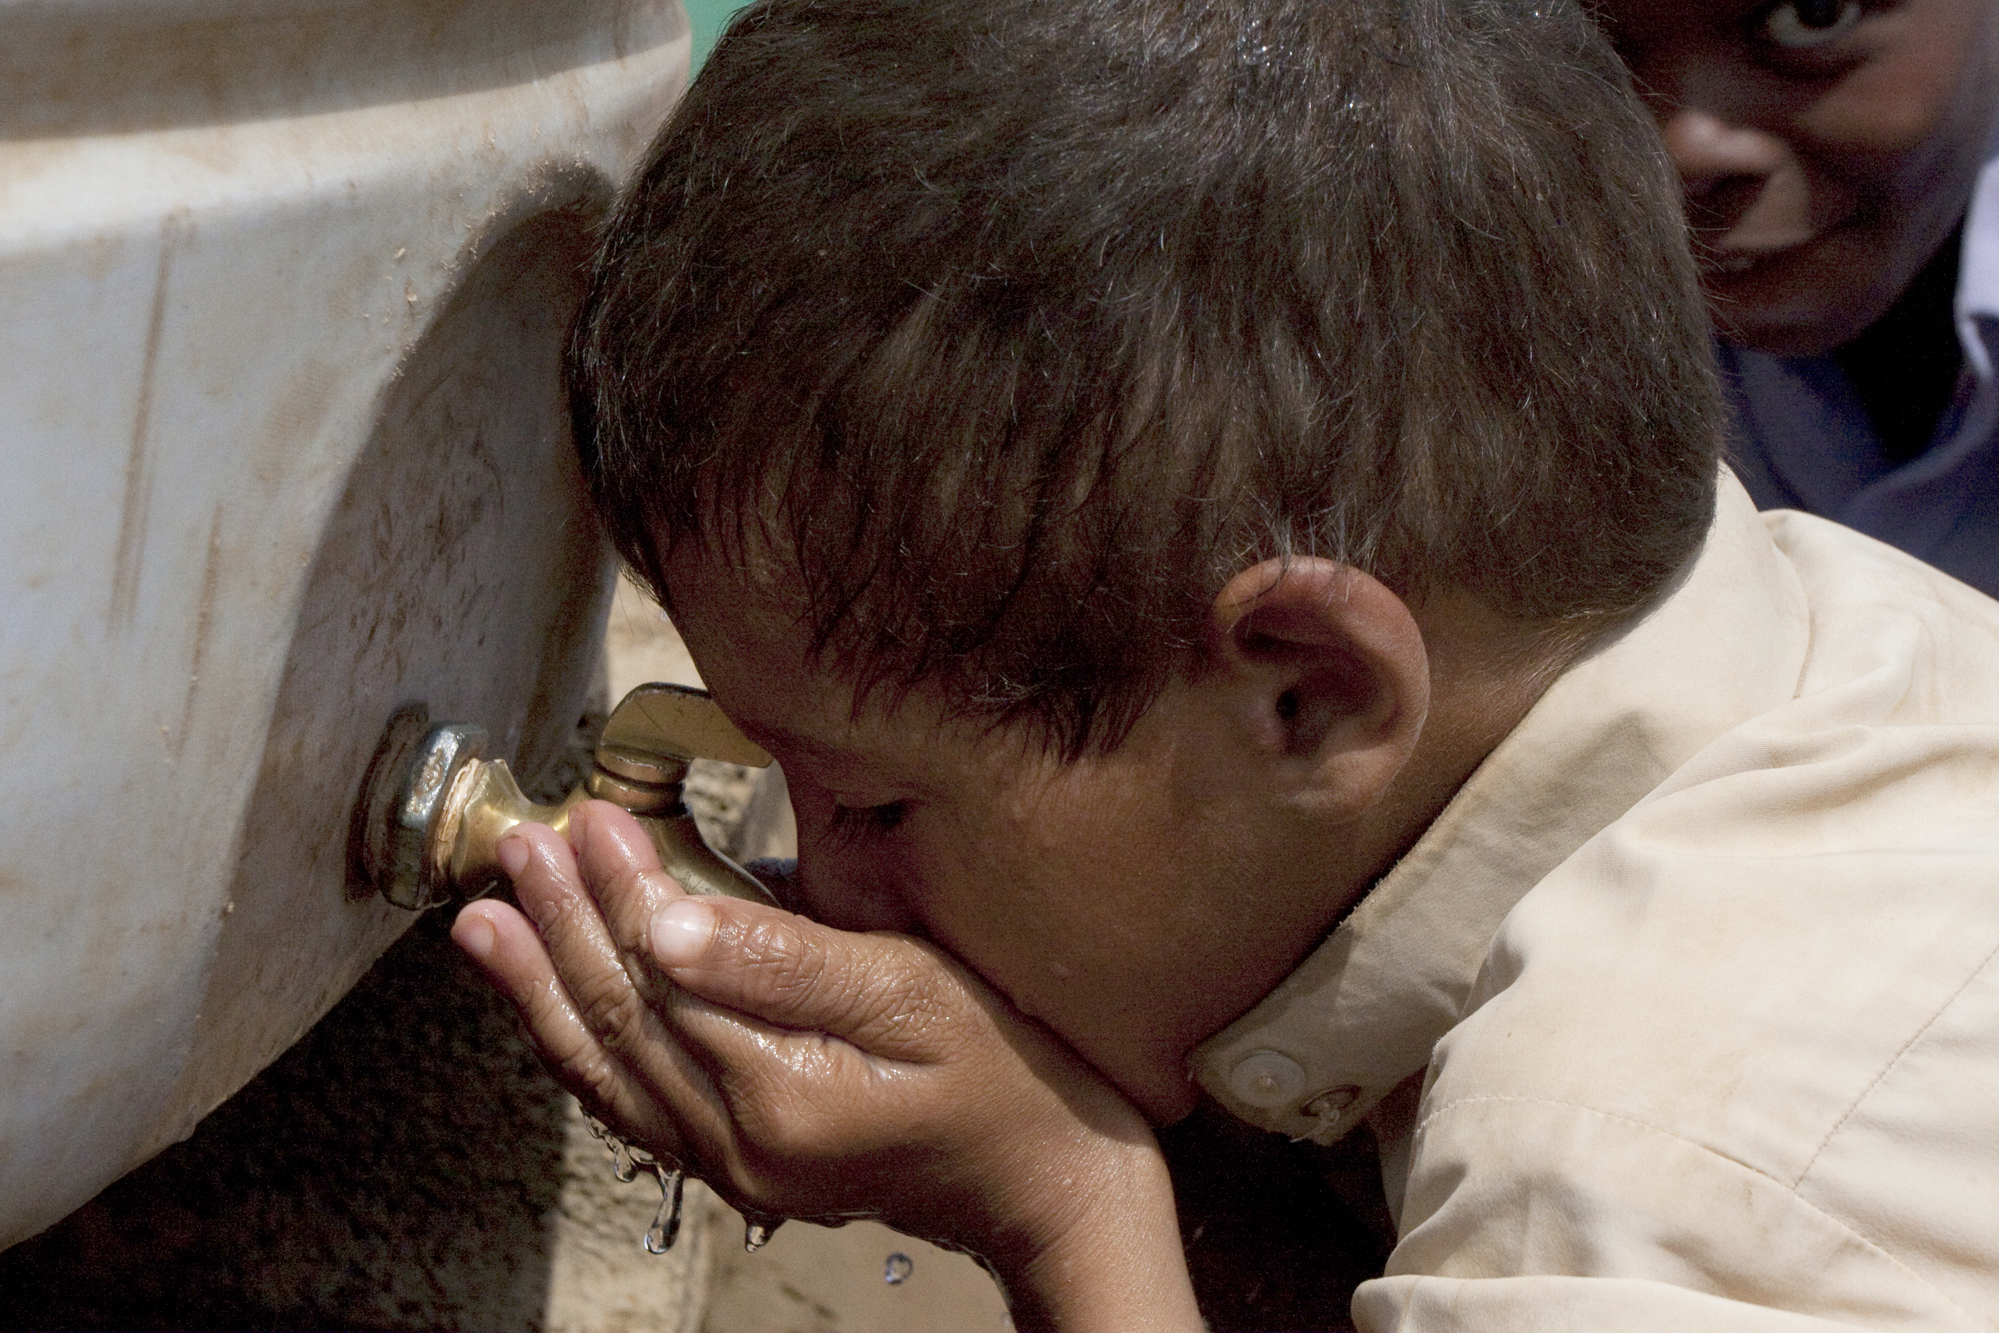 A boy drinks water from a large water tank at Mazraq camp in Hajjah province. The water is delivered by truck to the camp